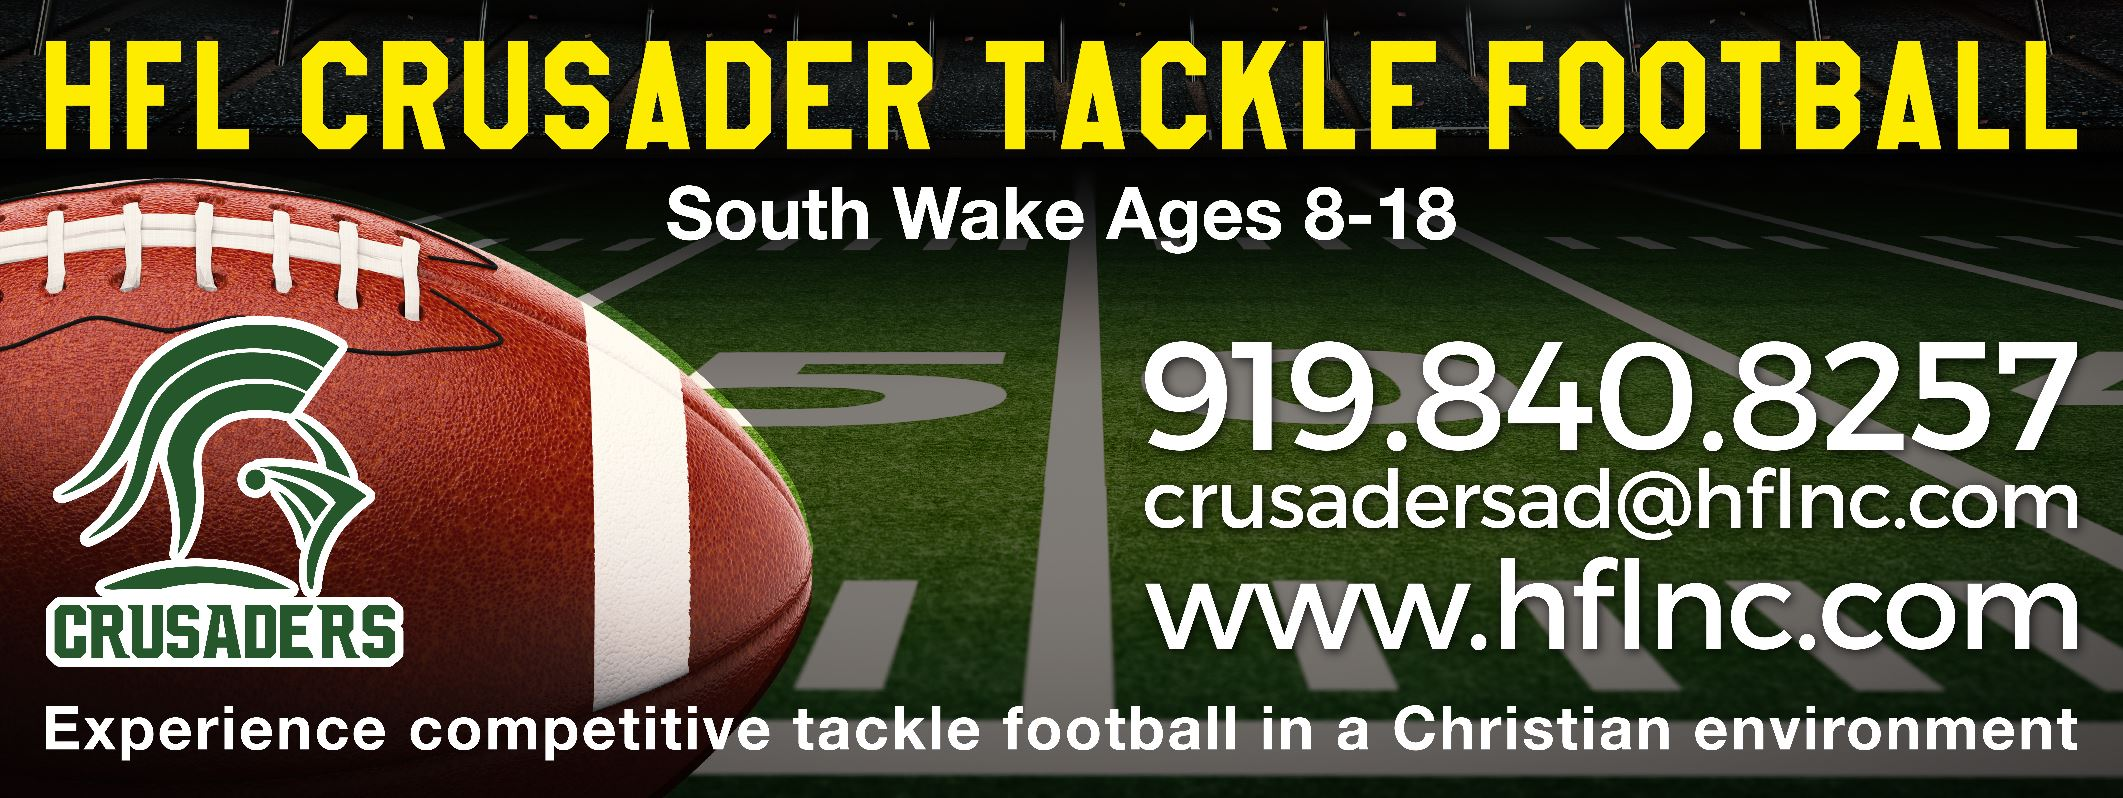 Register for the Fuquay Varina Holly Springs Apex Youth Tackle Football and Varisty Tackle Football Program